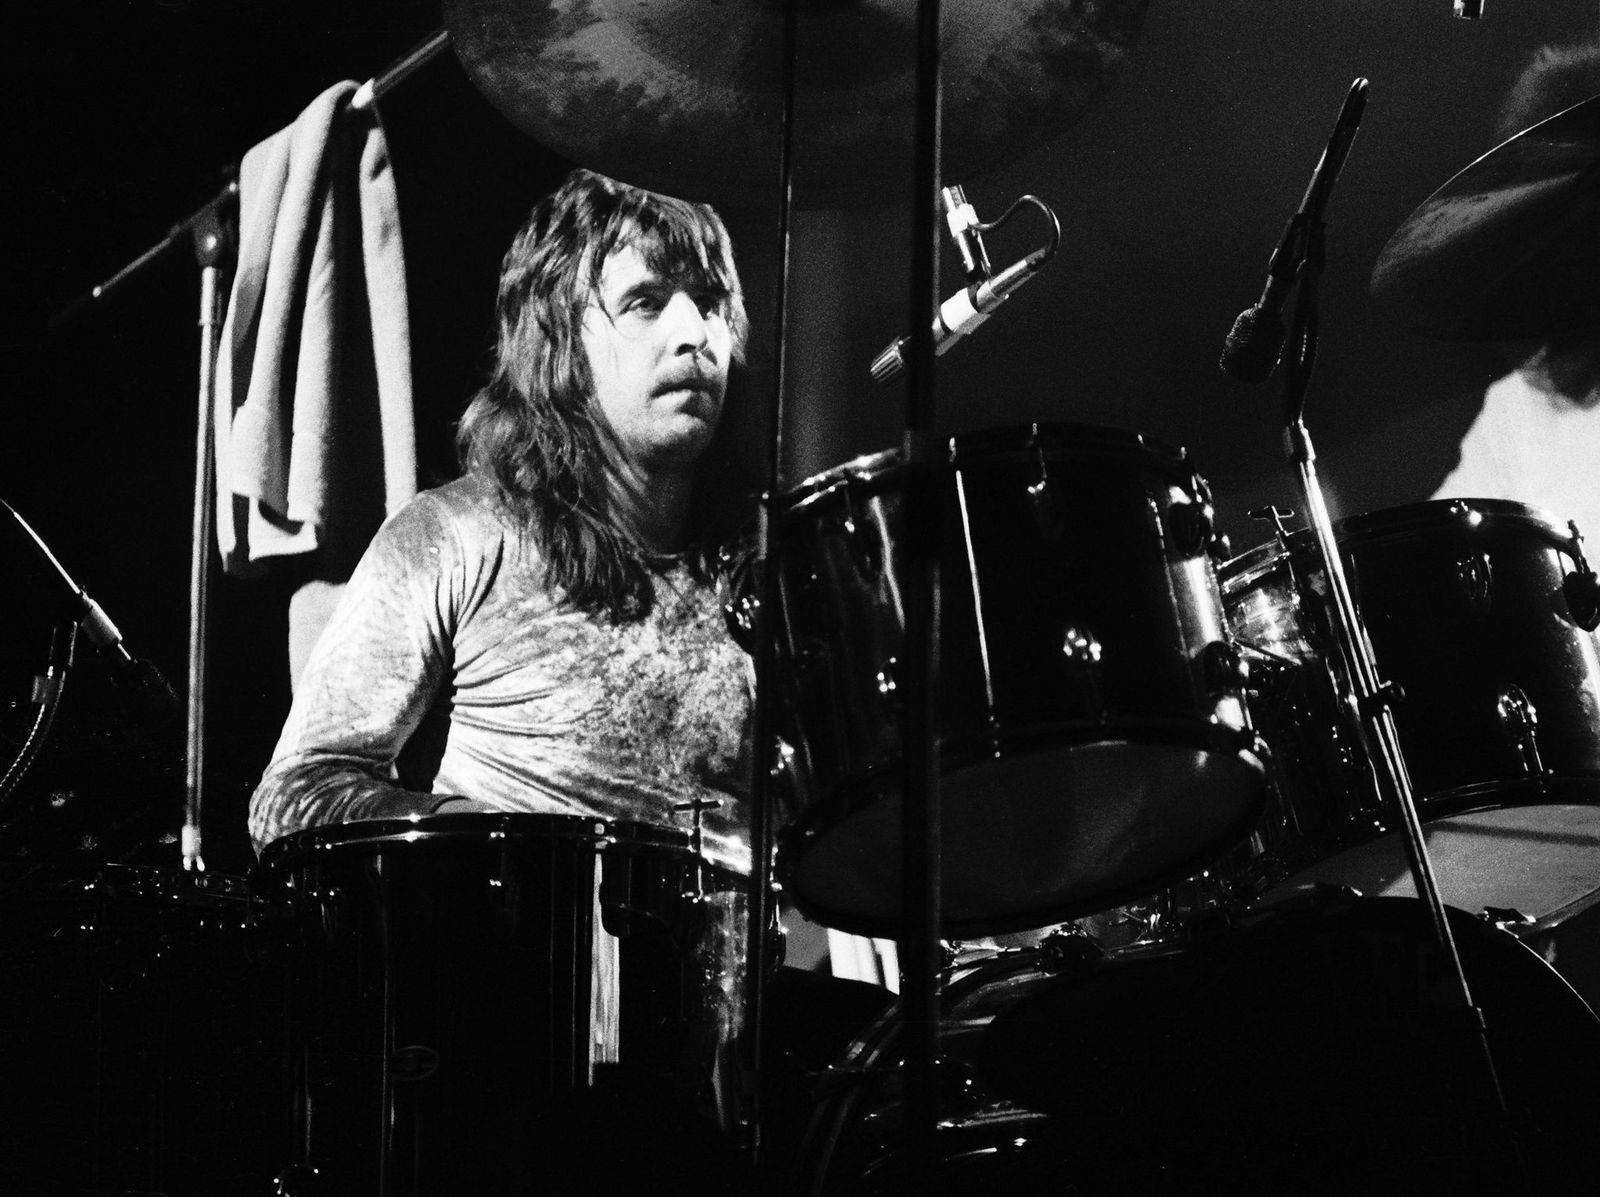 Lee Kerslake from Uriah Heep performs live on stage in Amsterdam, Netherlands on January 1, 1974 | Photo: Gijsbert Hanekroot/Redferns/Getty Images